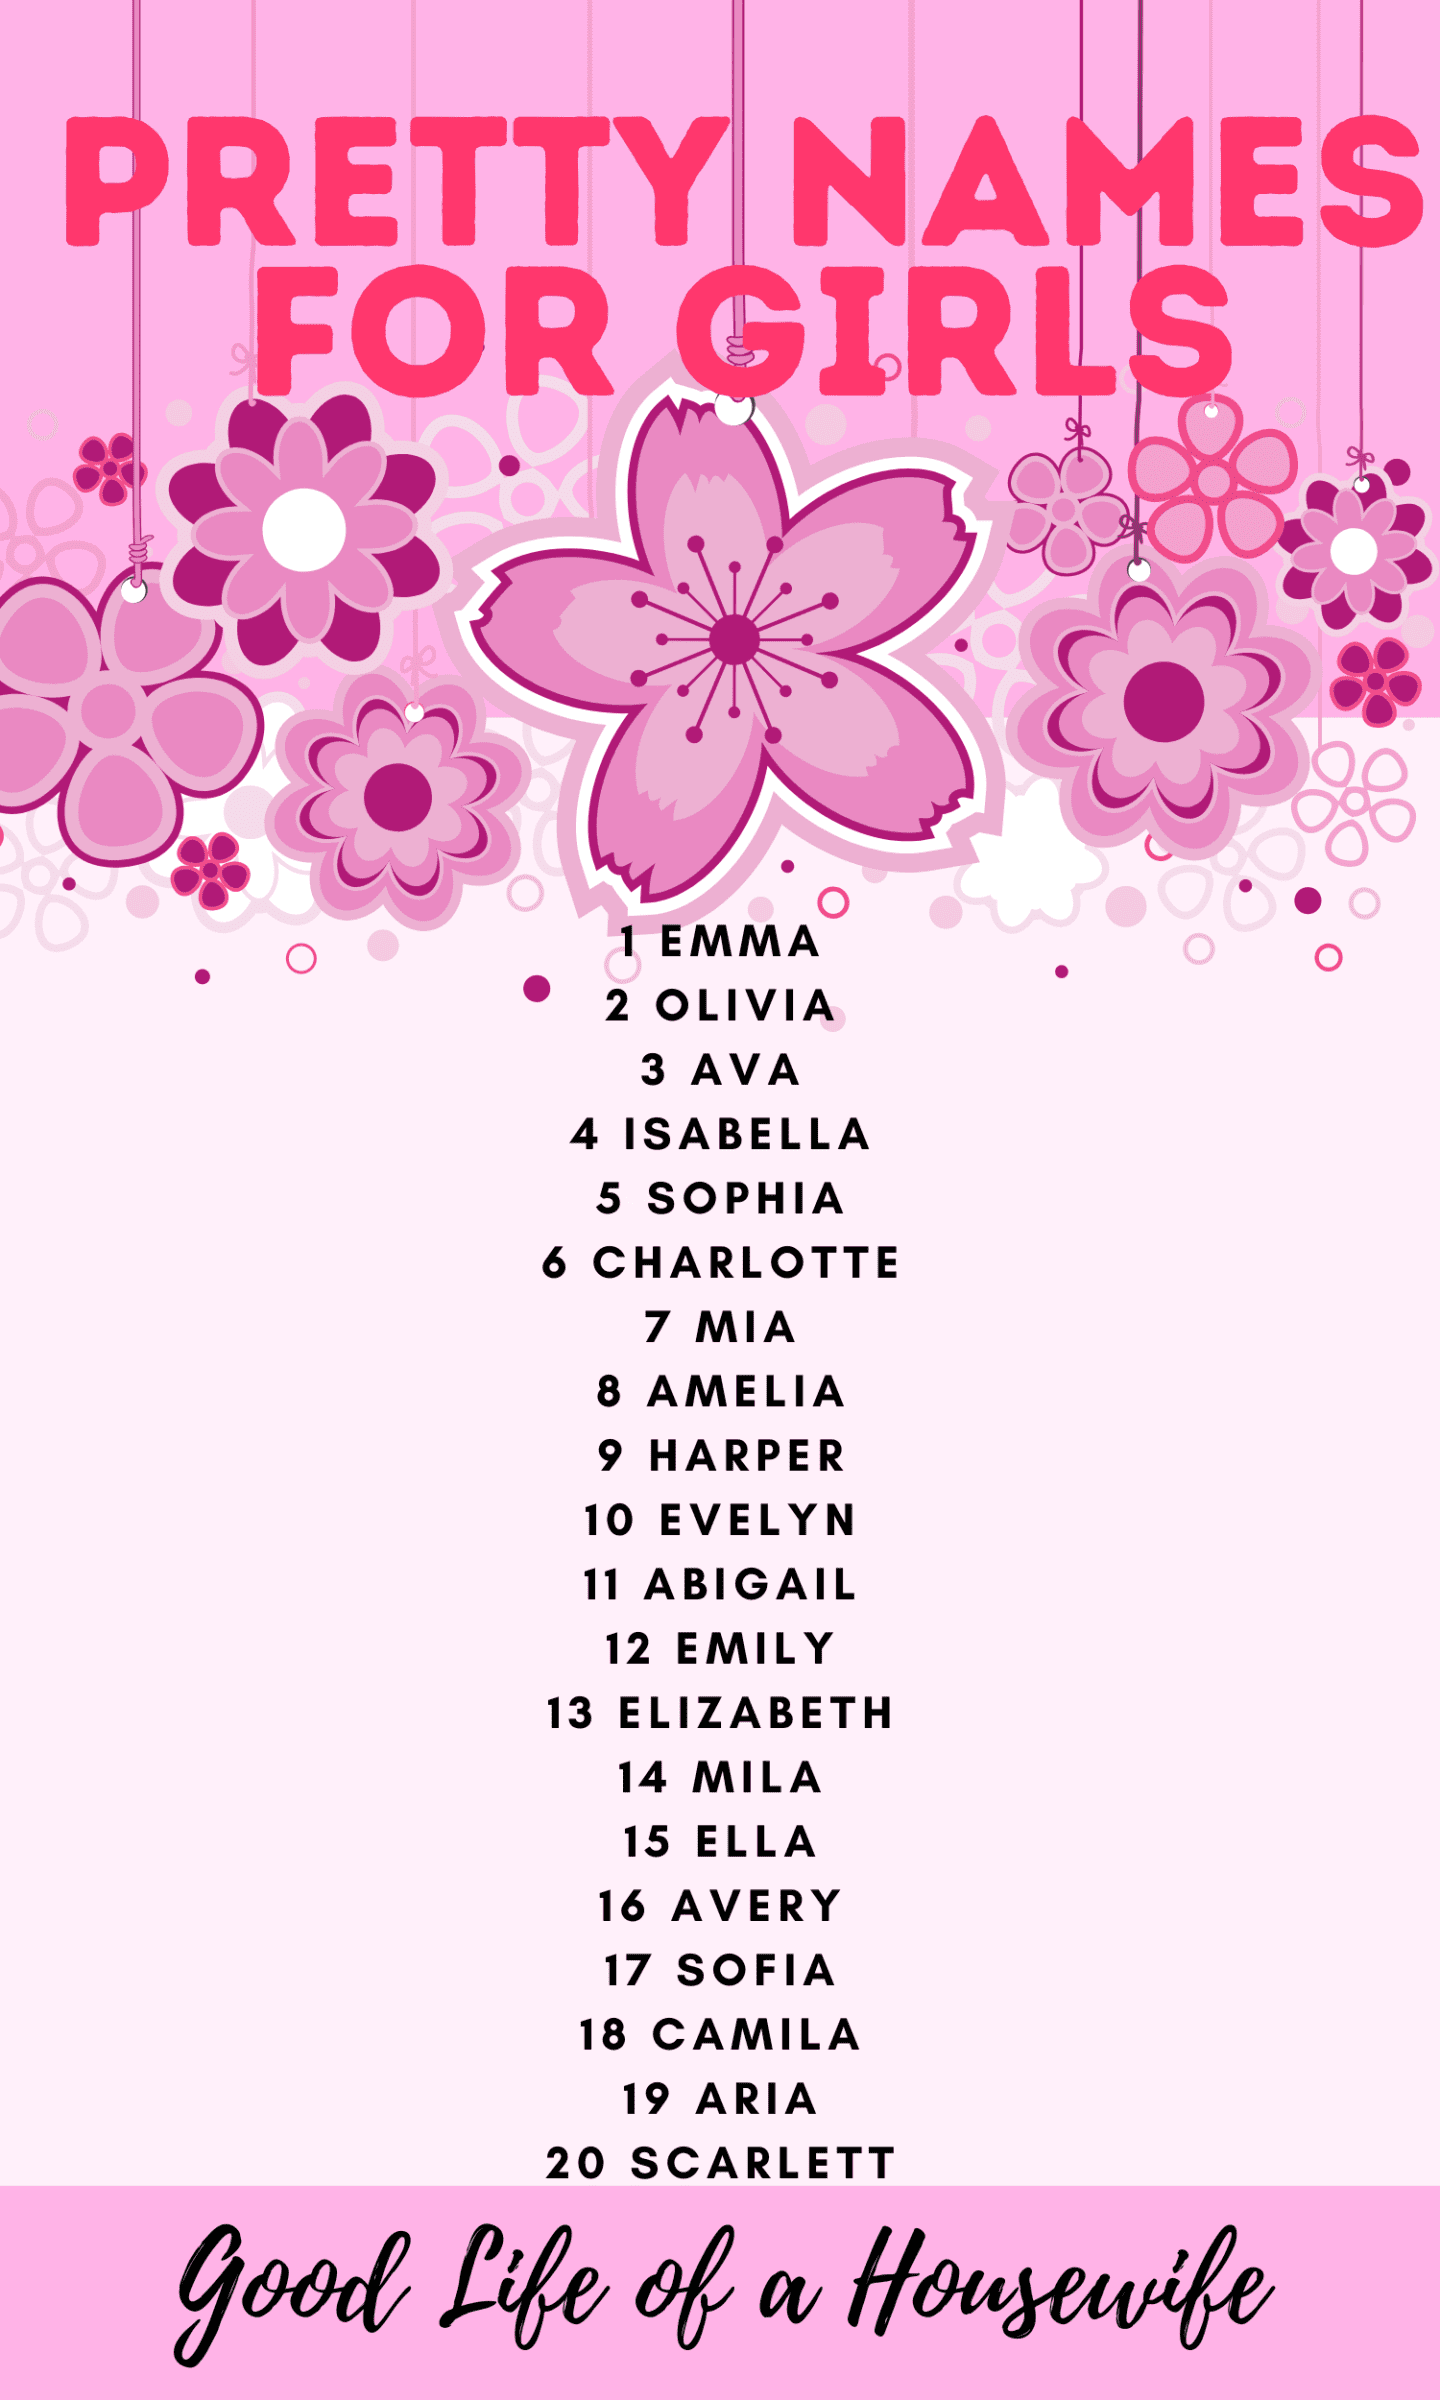 100 Pretty Names for Girls